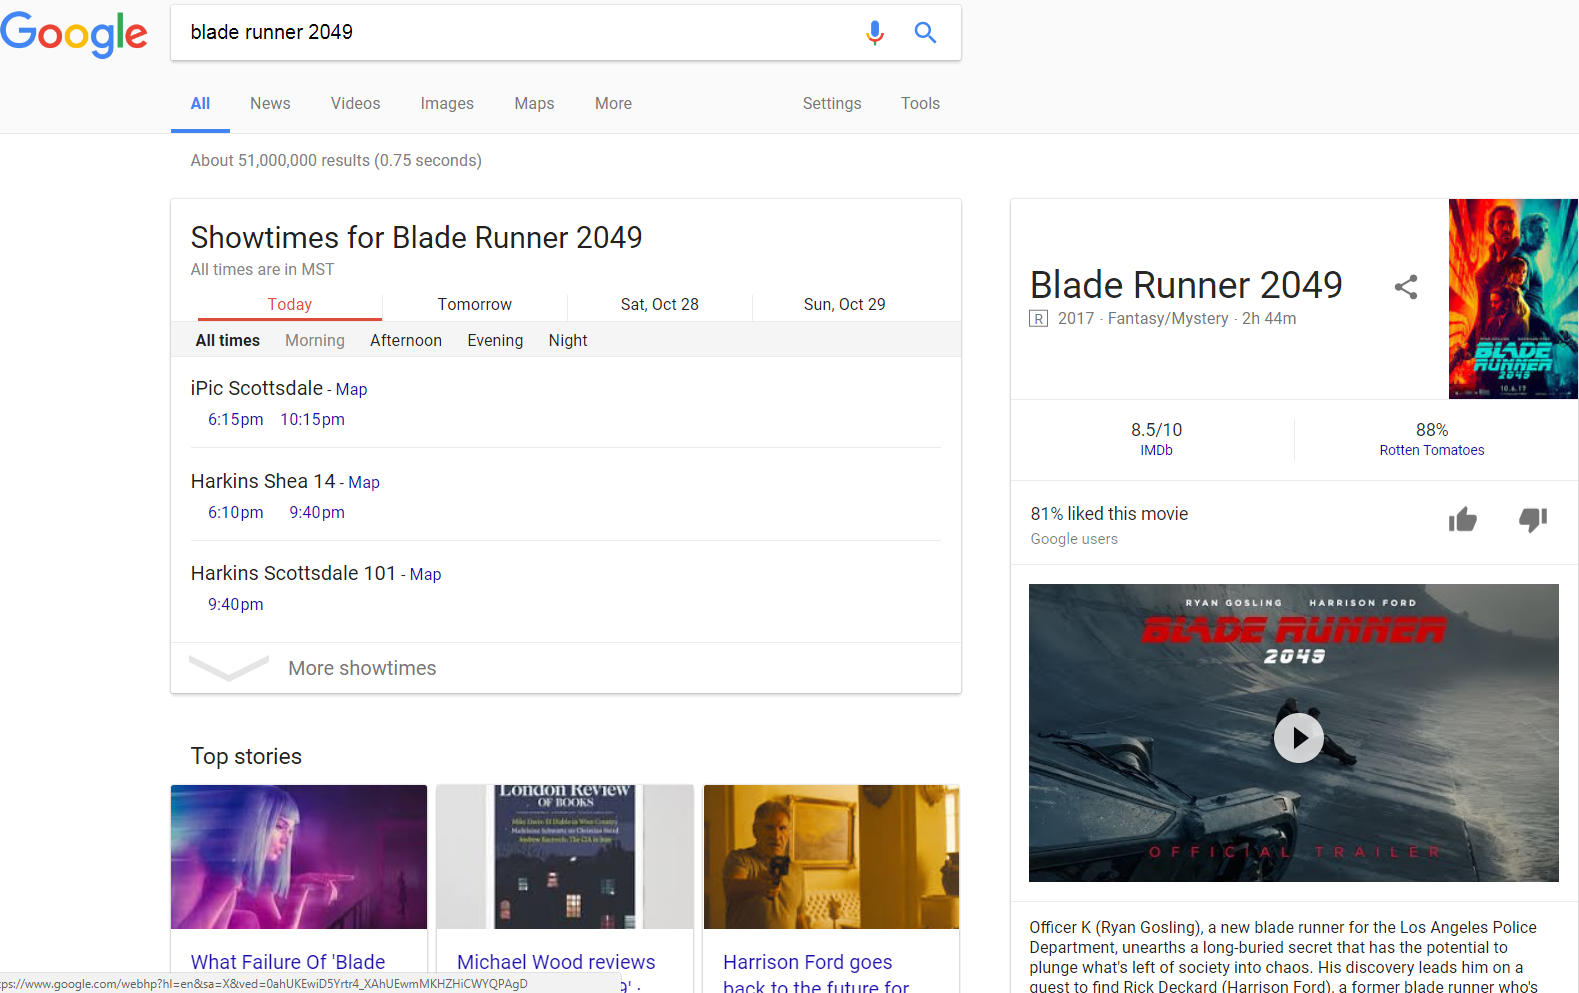 How to Get Featured Snippets